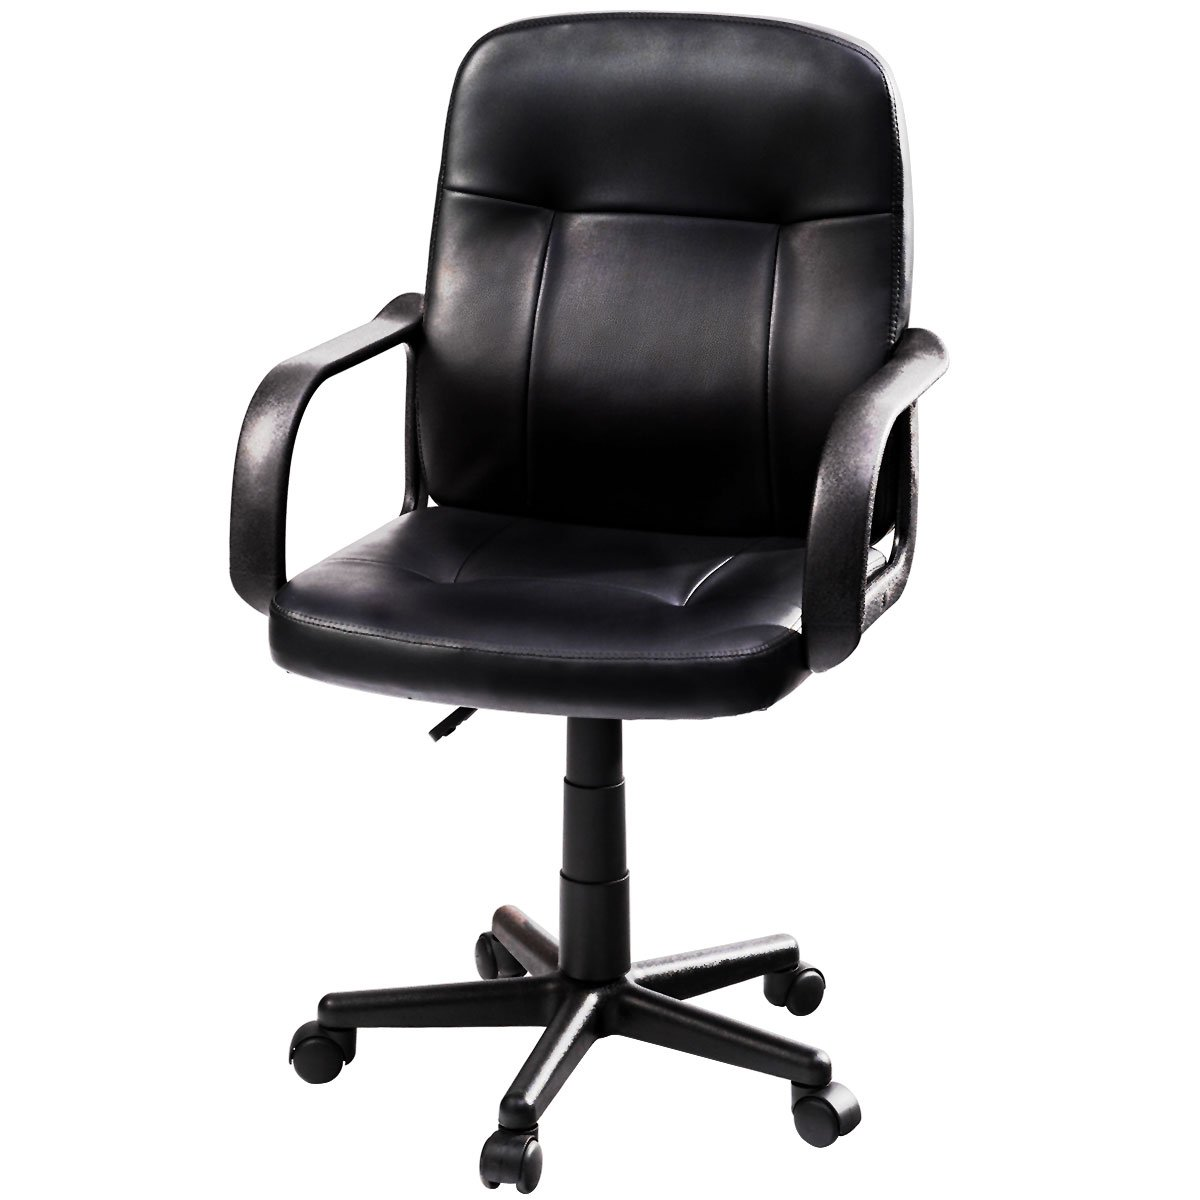 Giantex Computer Desk Office Chair Leather Mid-Back Ergonomic Upholstered Fully Adjustable Height W/ Wheels Arms Home Commercial Task Professional Swivel Office Desk Executive Chair Black